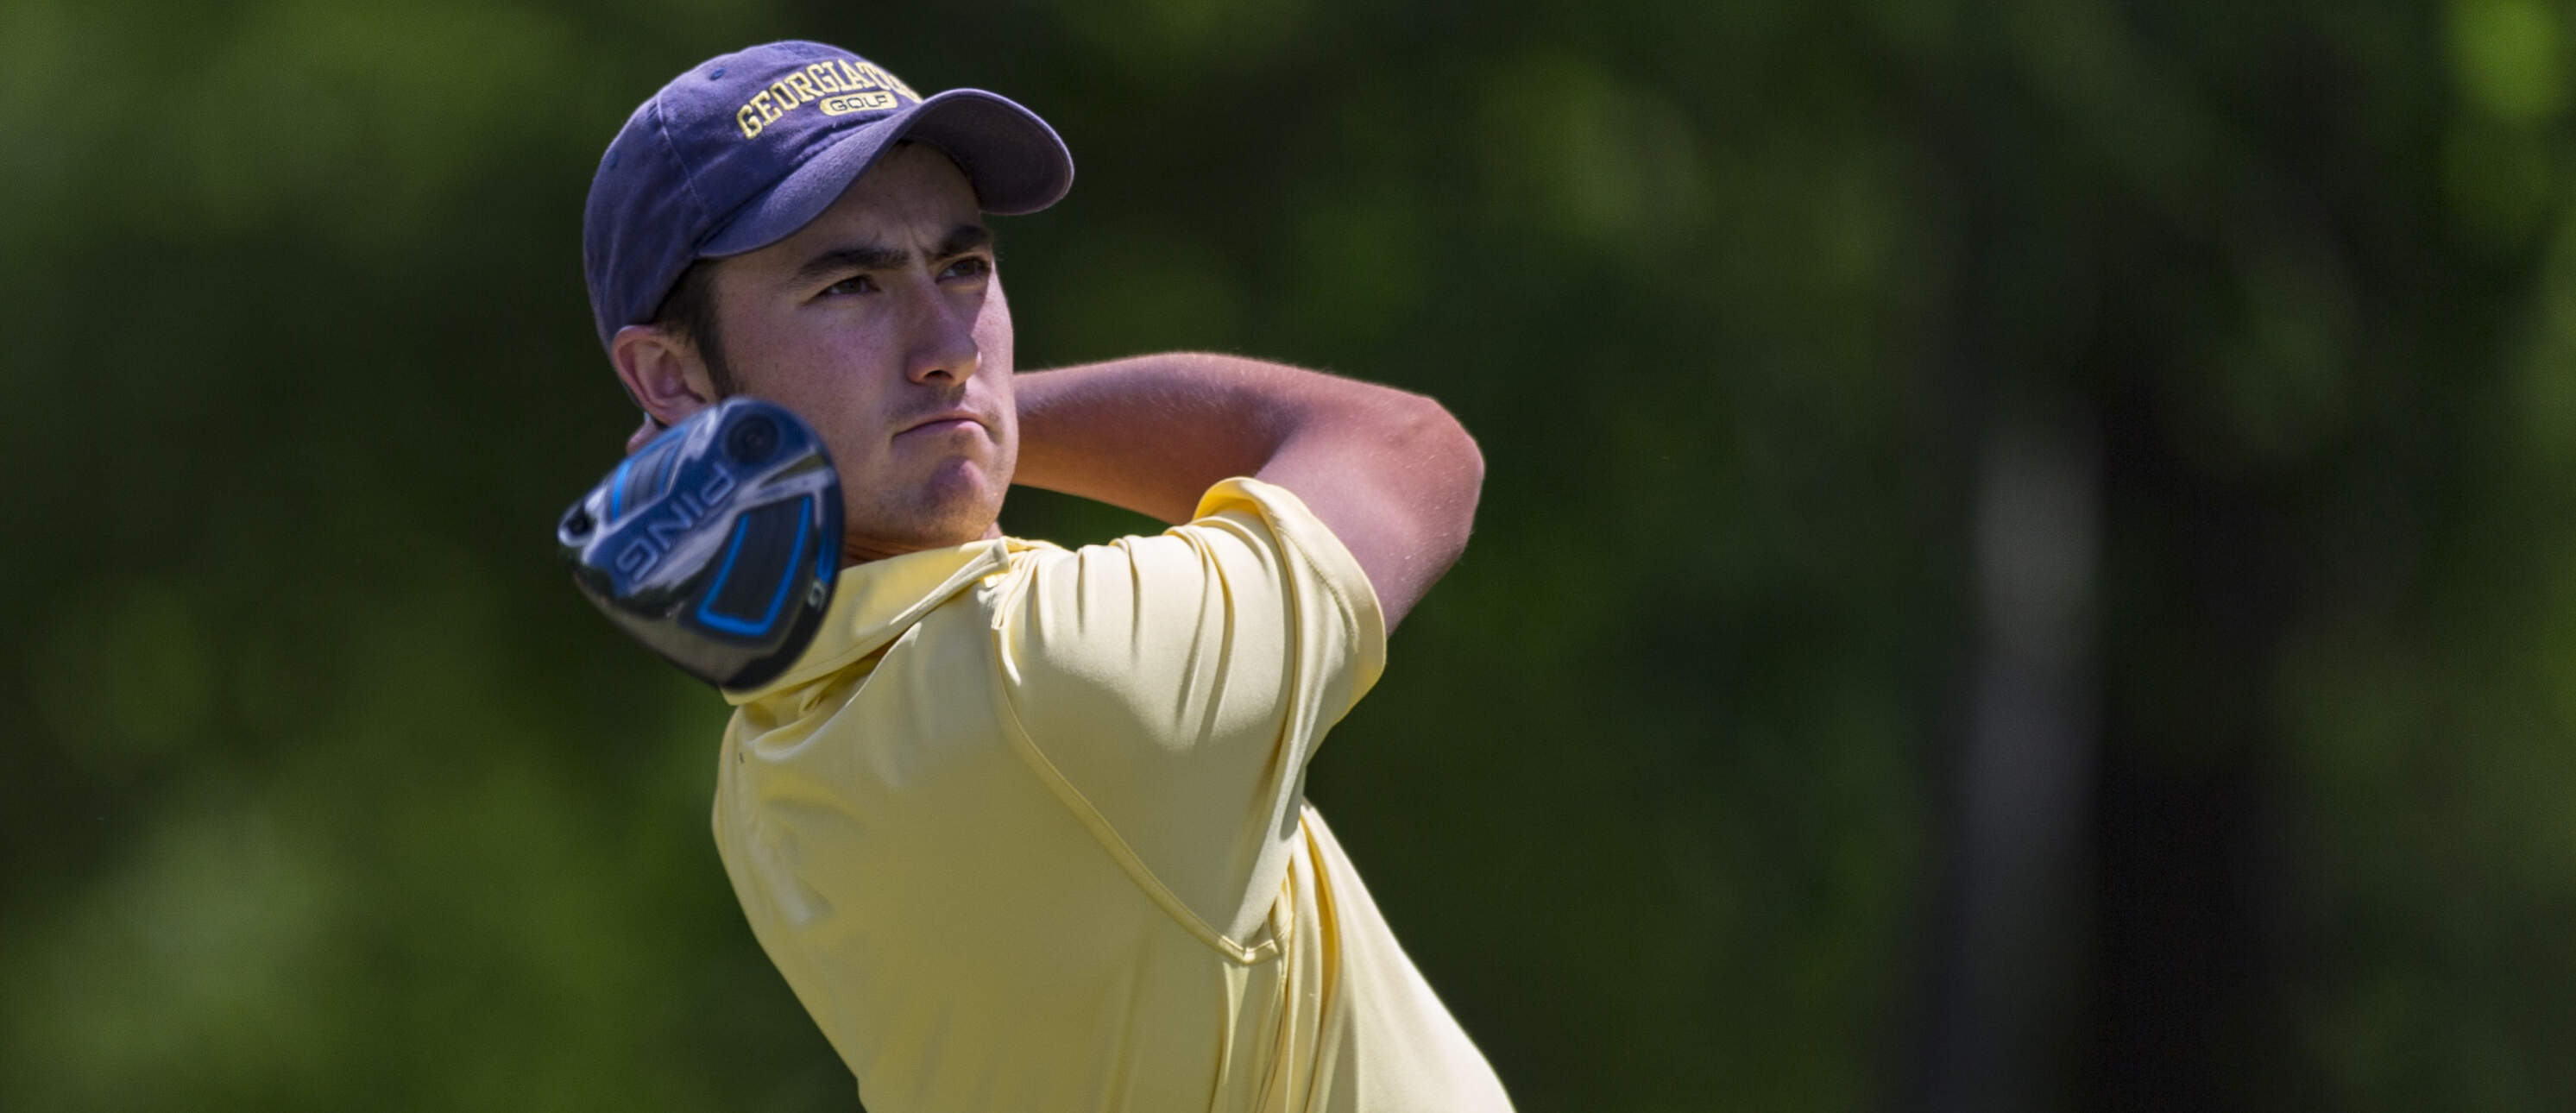 Chris Petefish during the second round of the ACC Golf Championship at the Old North State Club, New London, N.C.